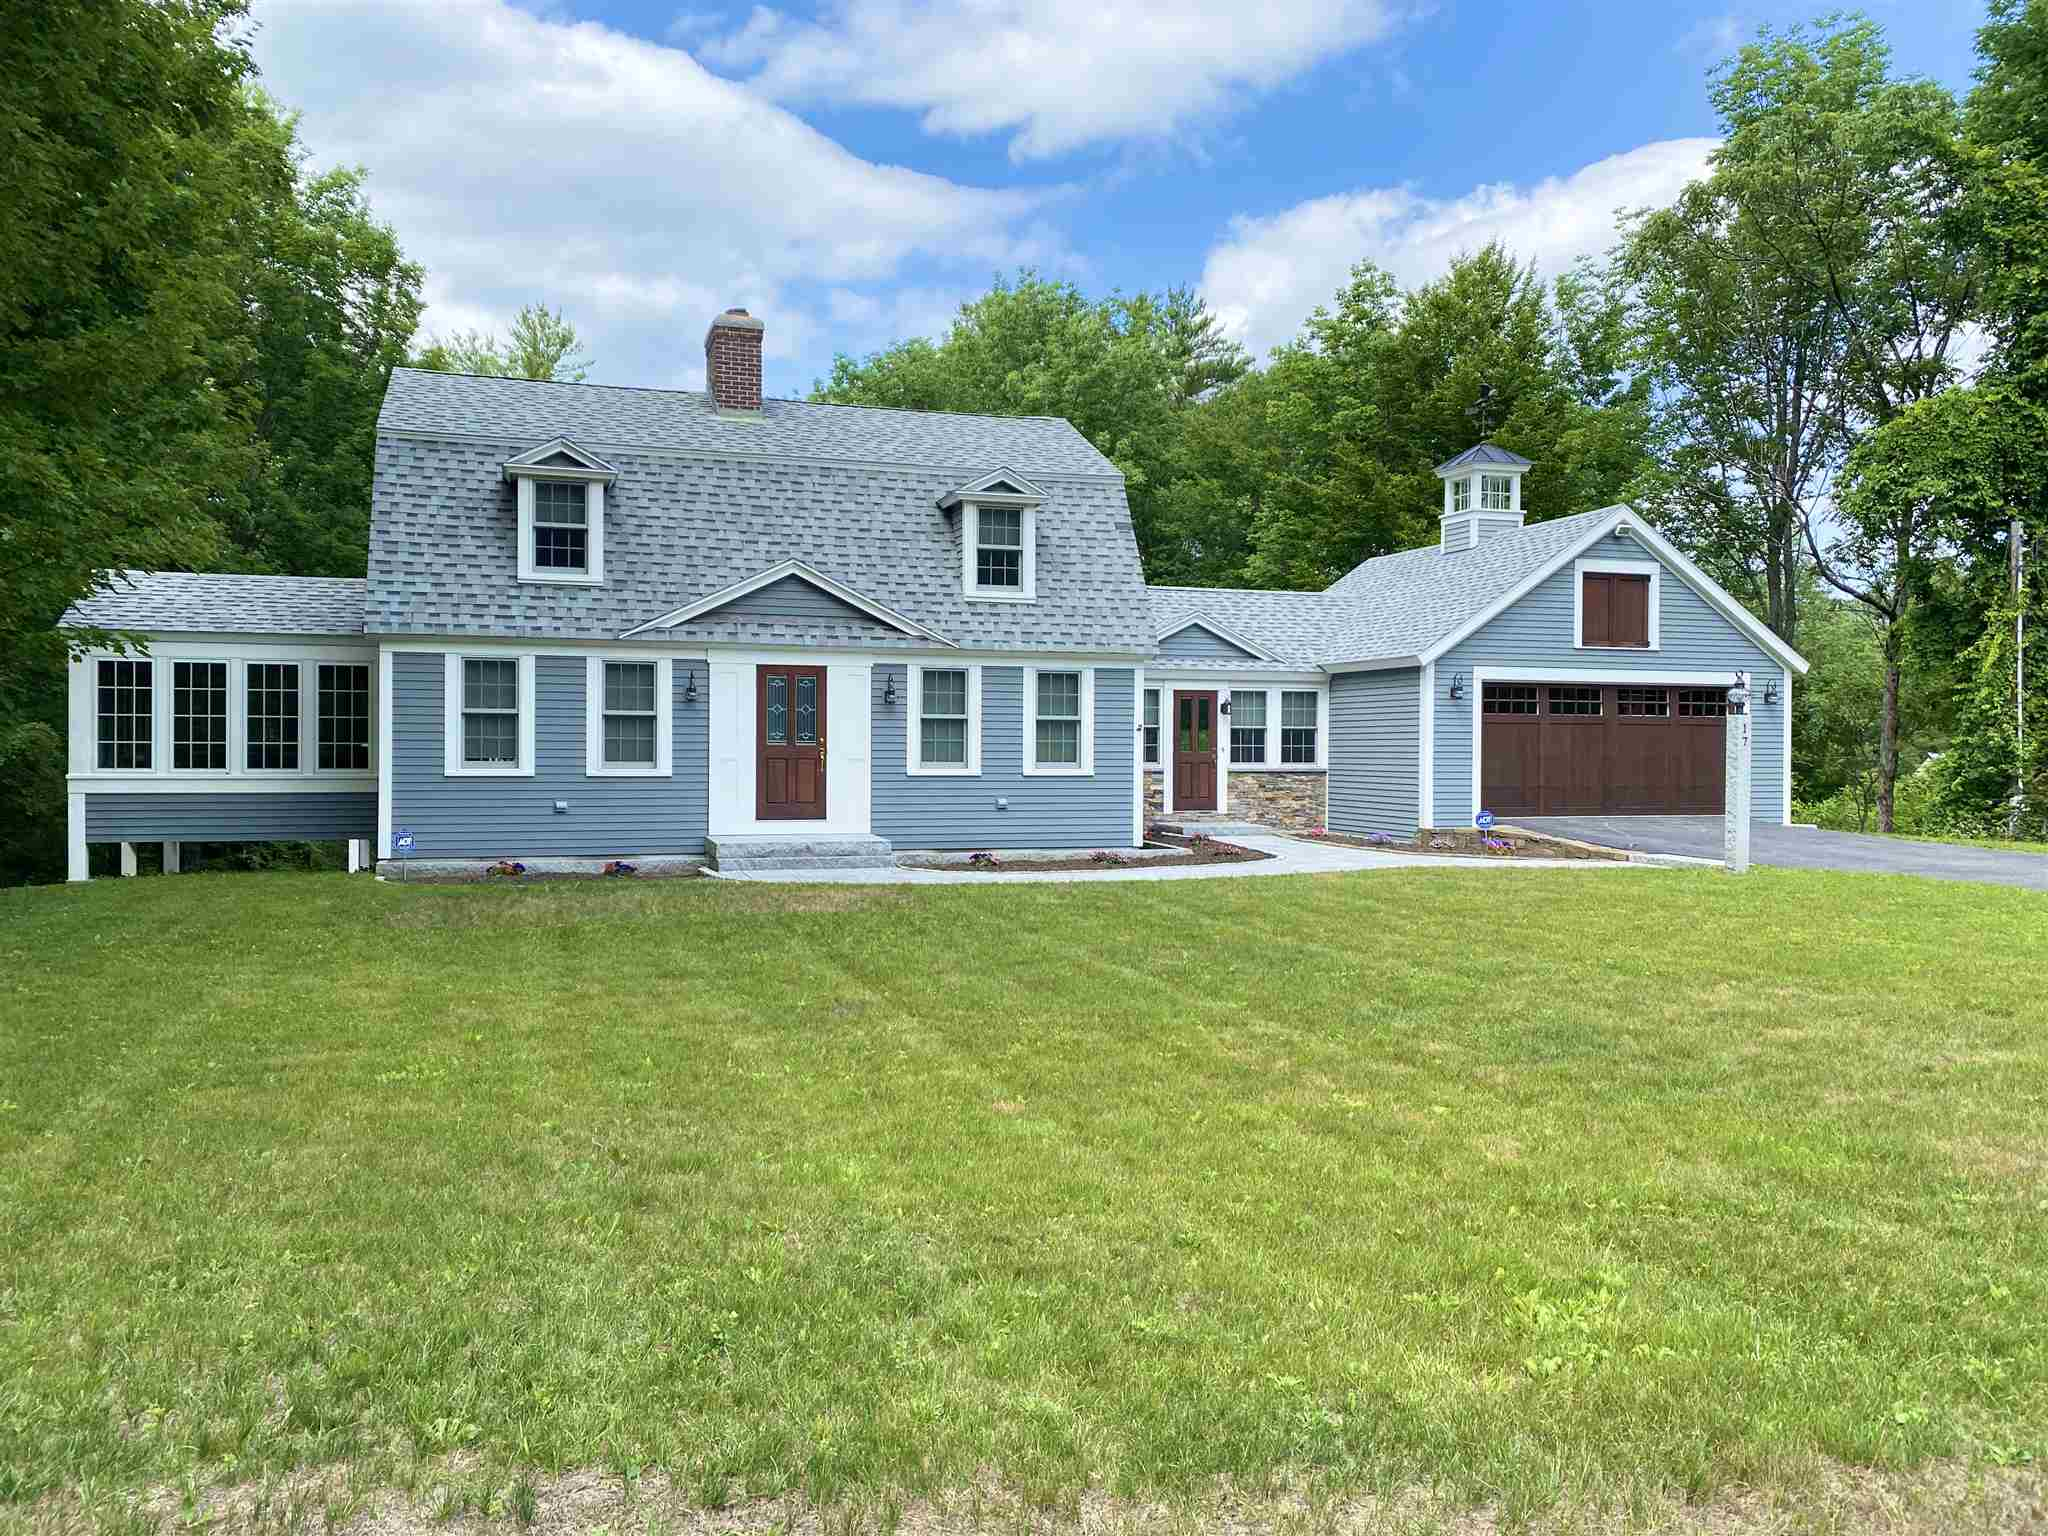 MLS 4815519: 17 Parker Street, Plymouth NH